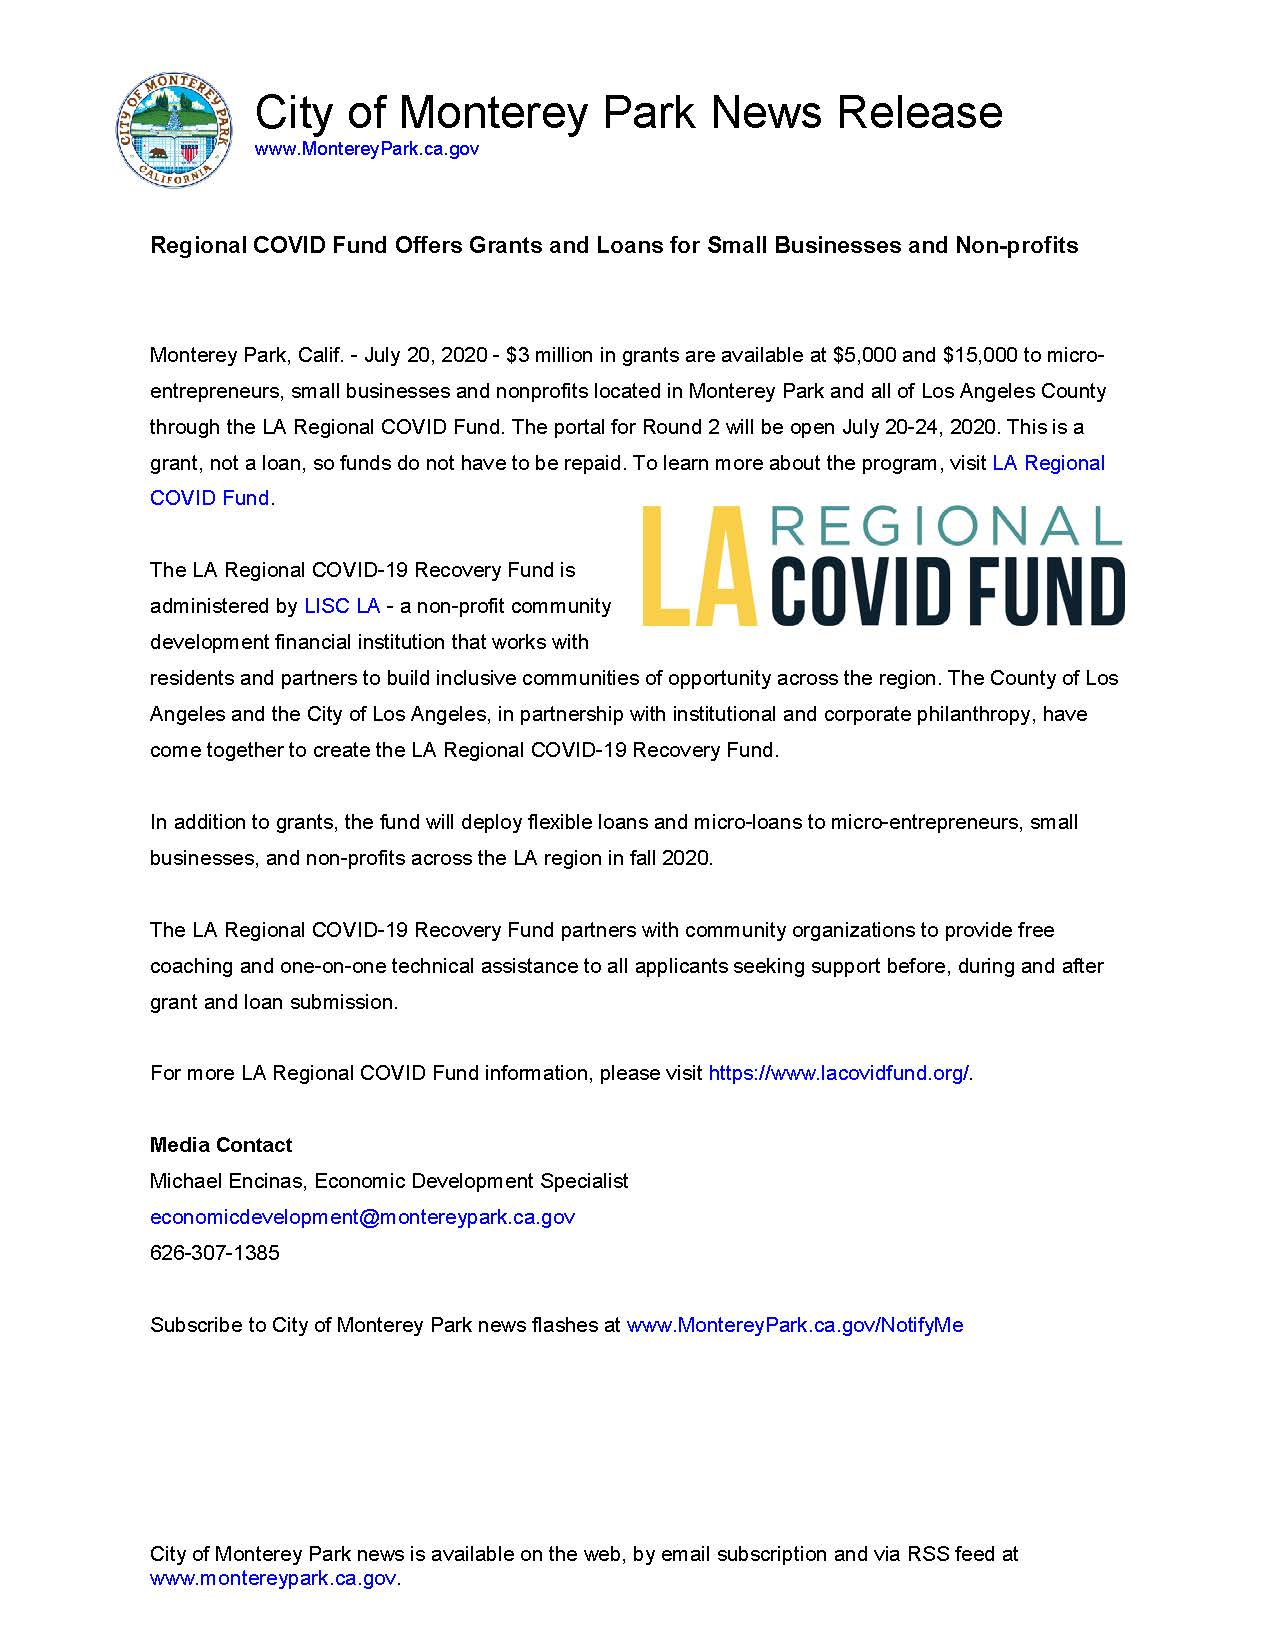 MPK News Release-Regional COVID Fund Offers Grants and Loans for Small Businesses and Non-profits